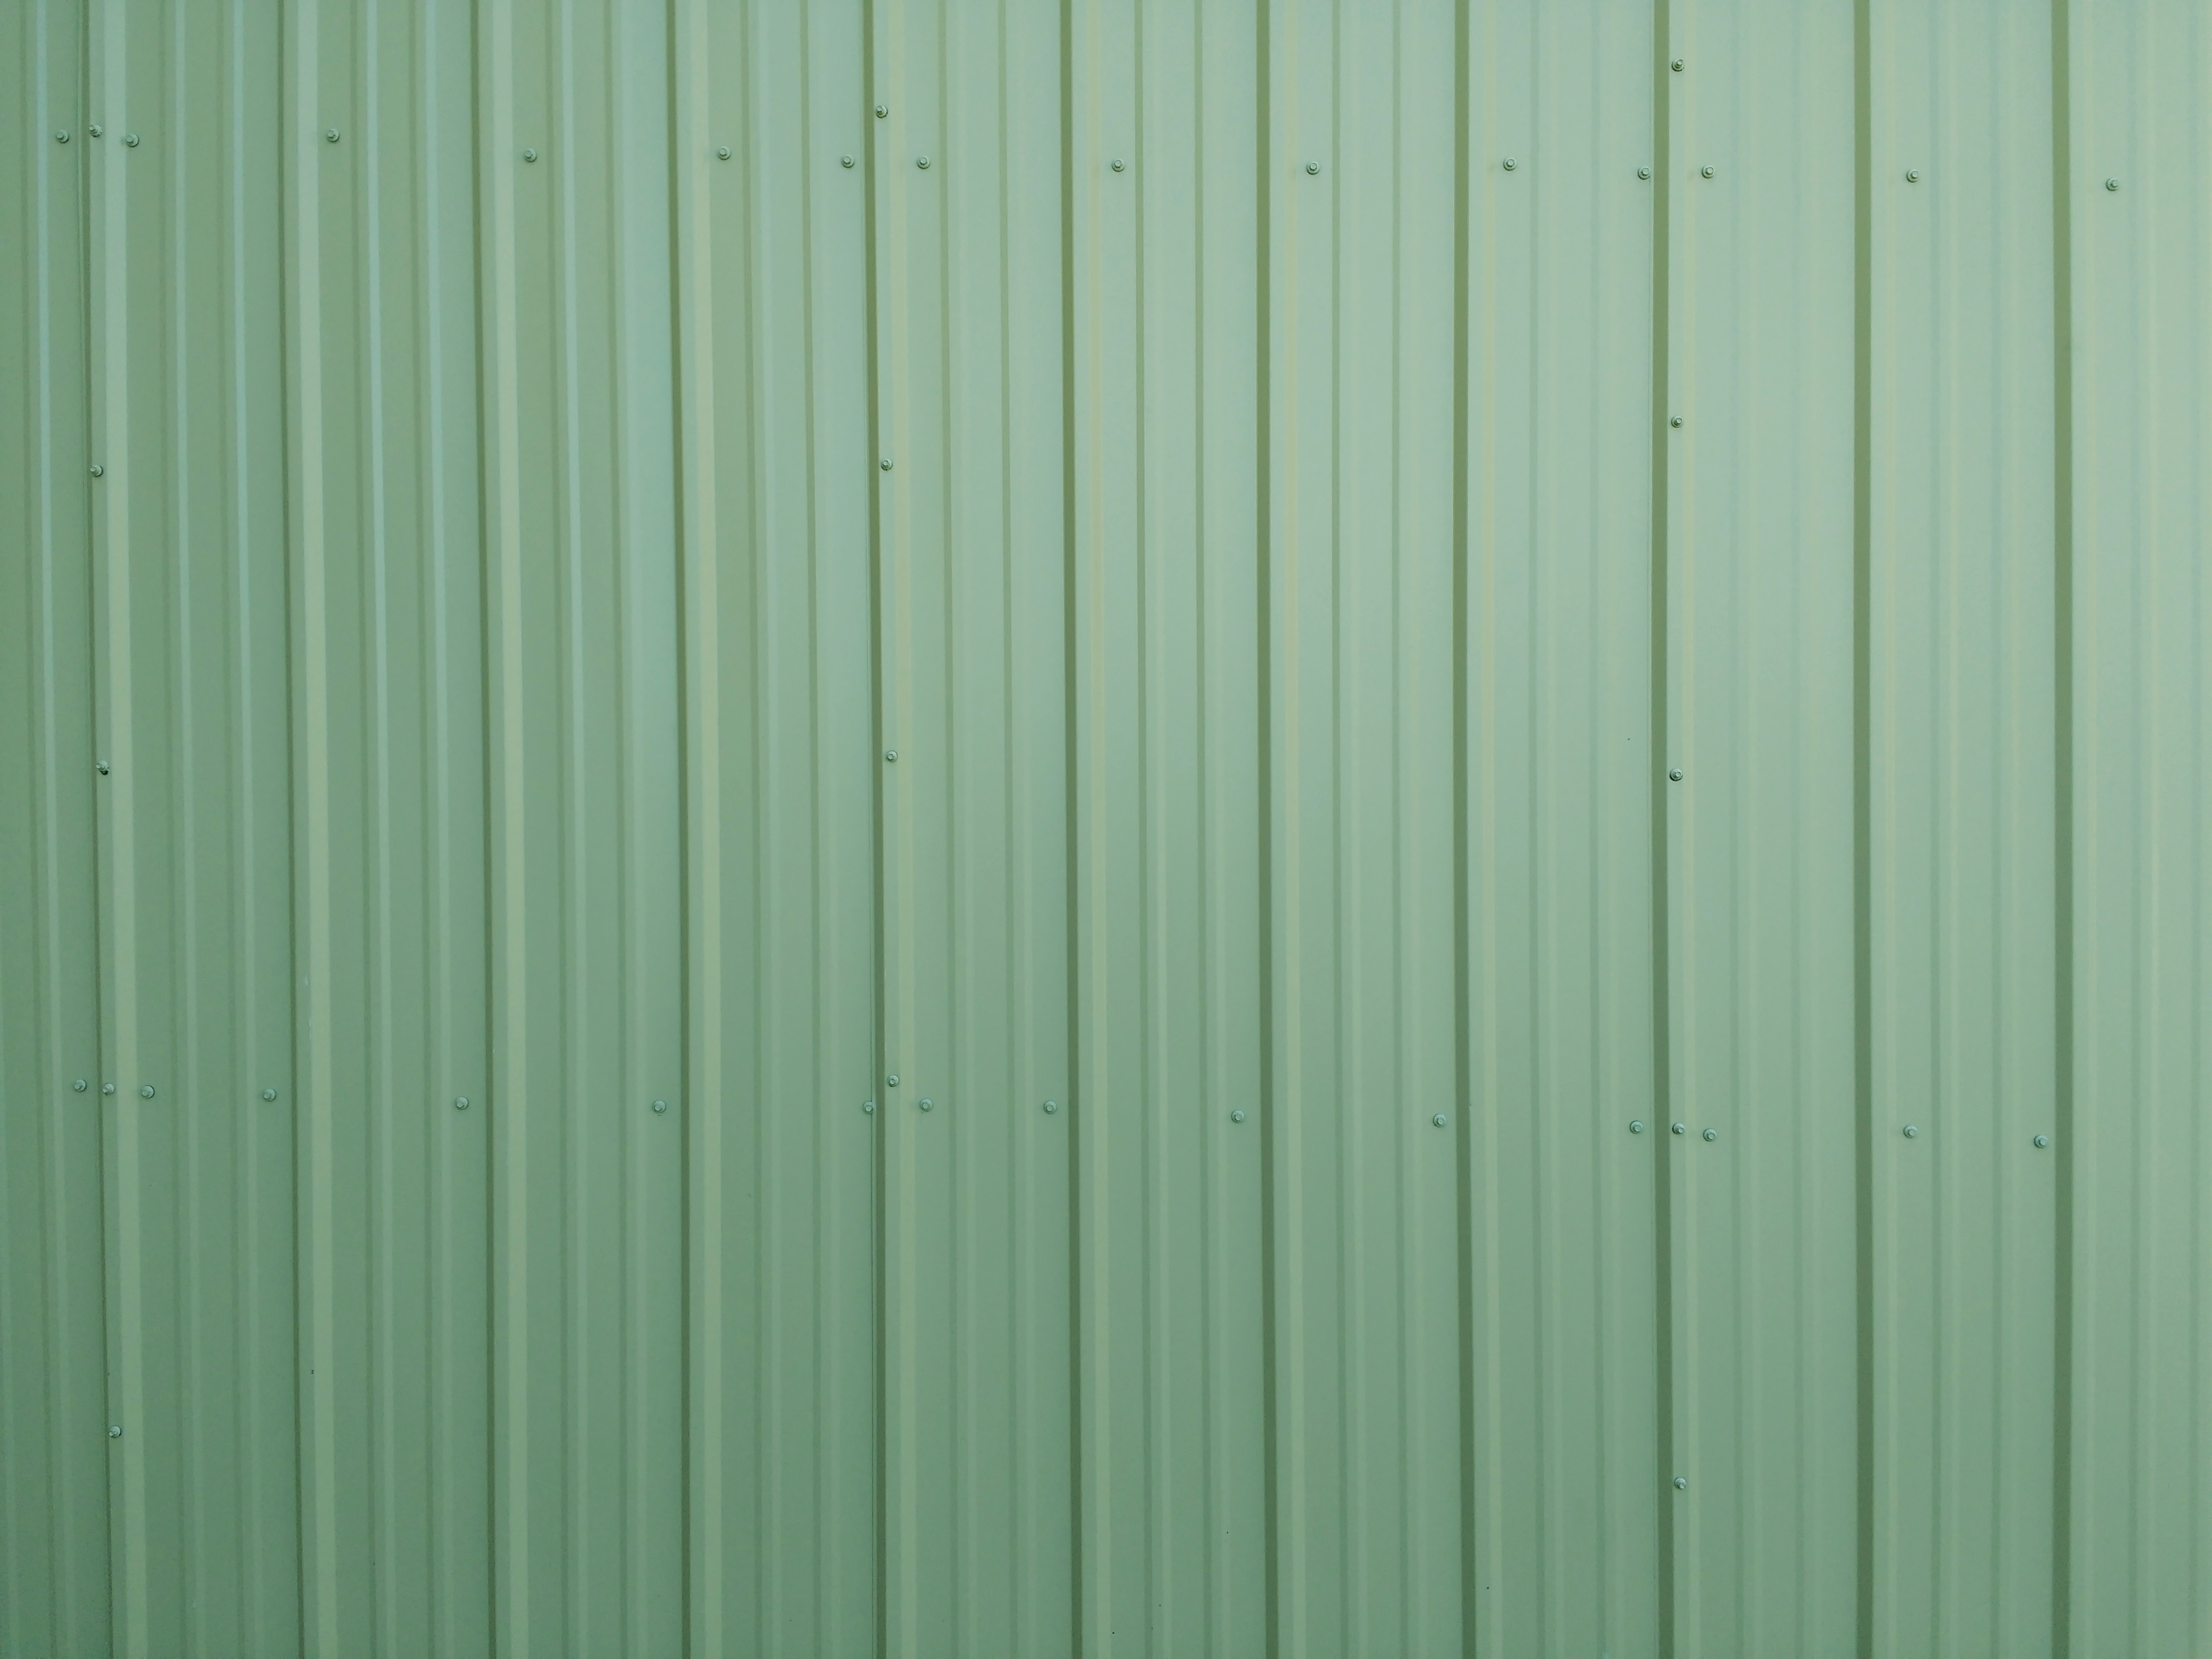 Green Ribbed Metal Siding Texture Picture Free